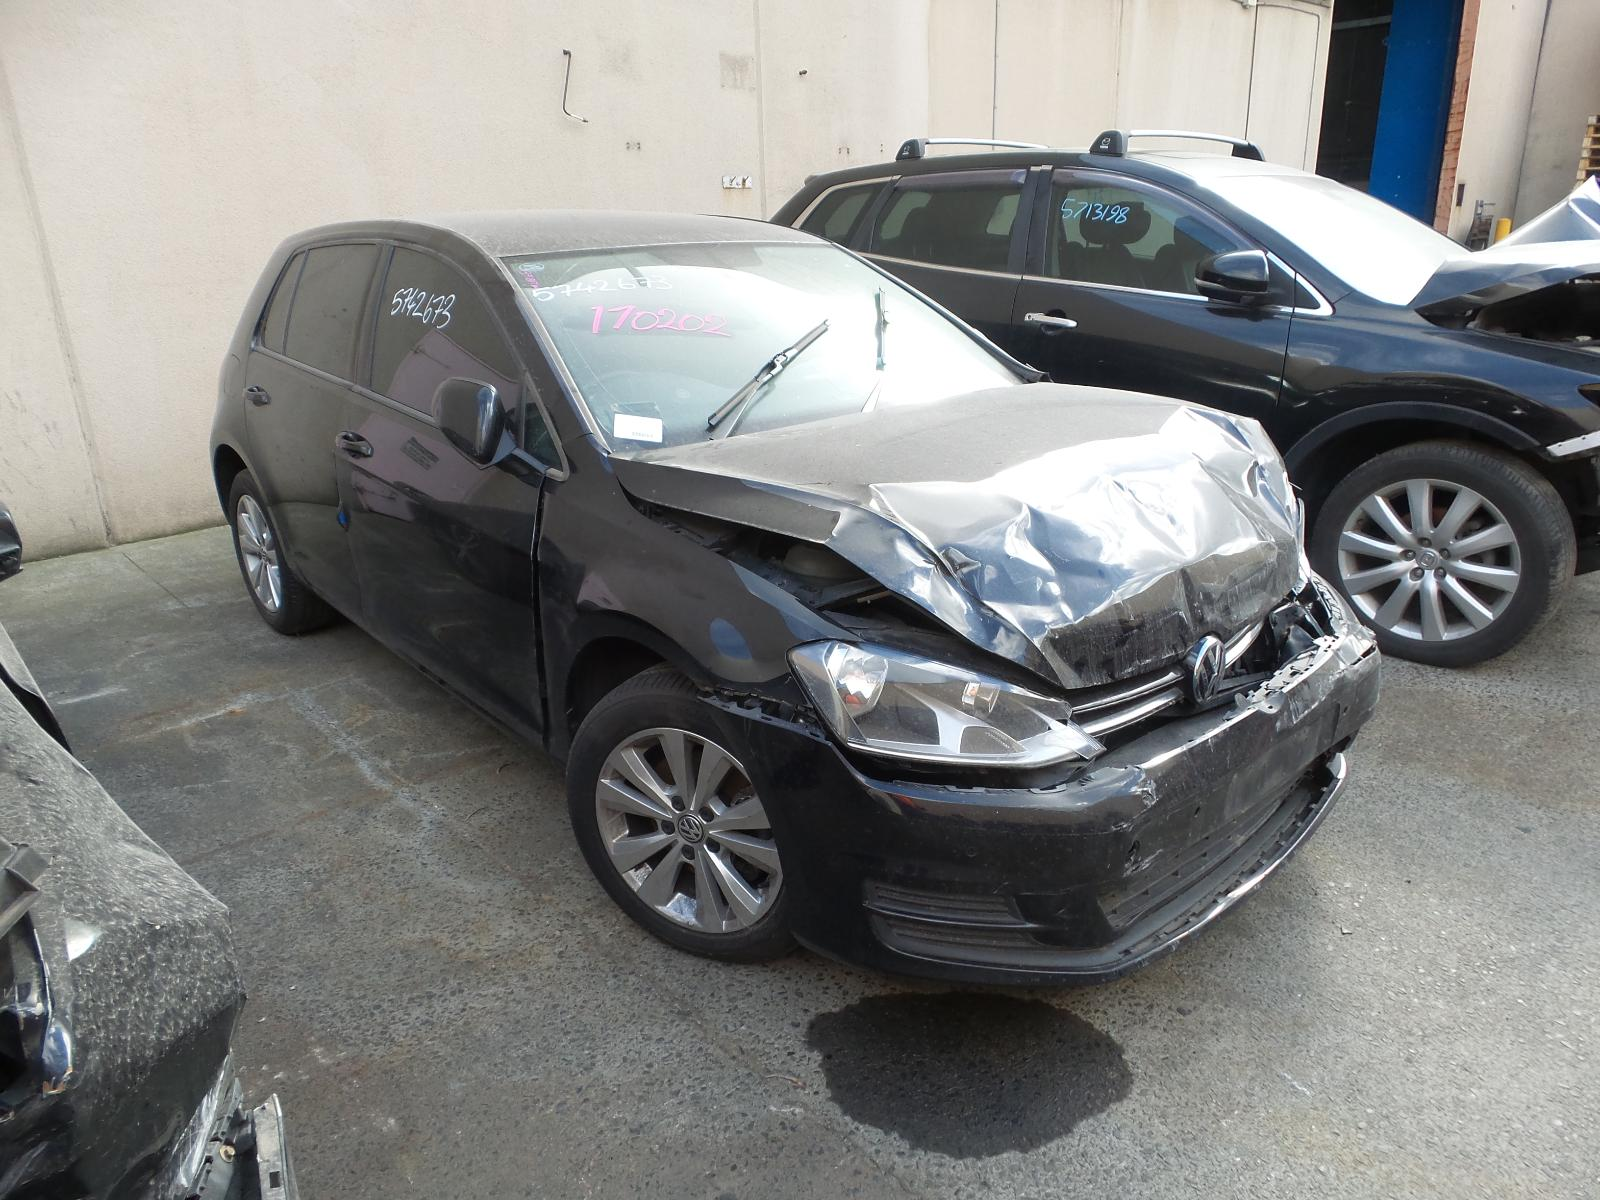 View Auto part Misc Volkswagen Golf 2014